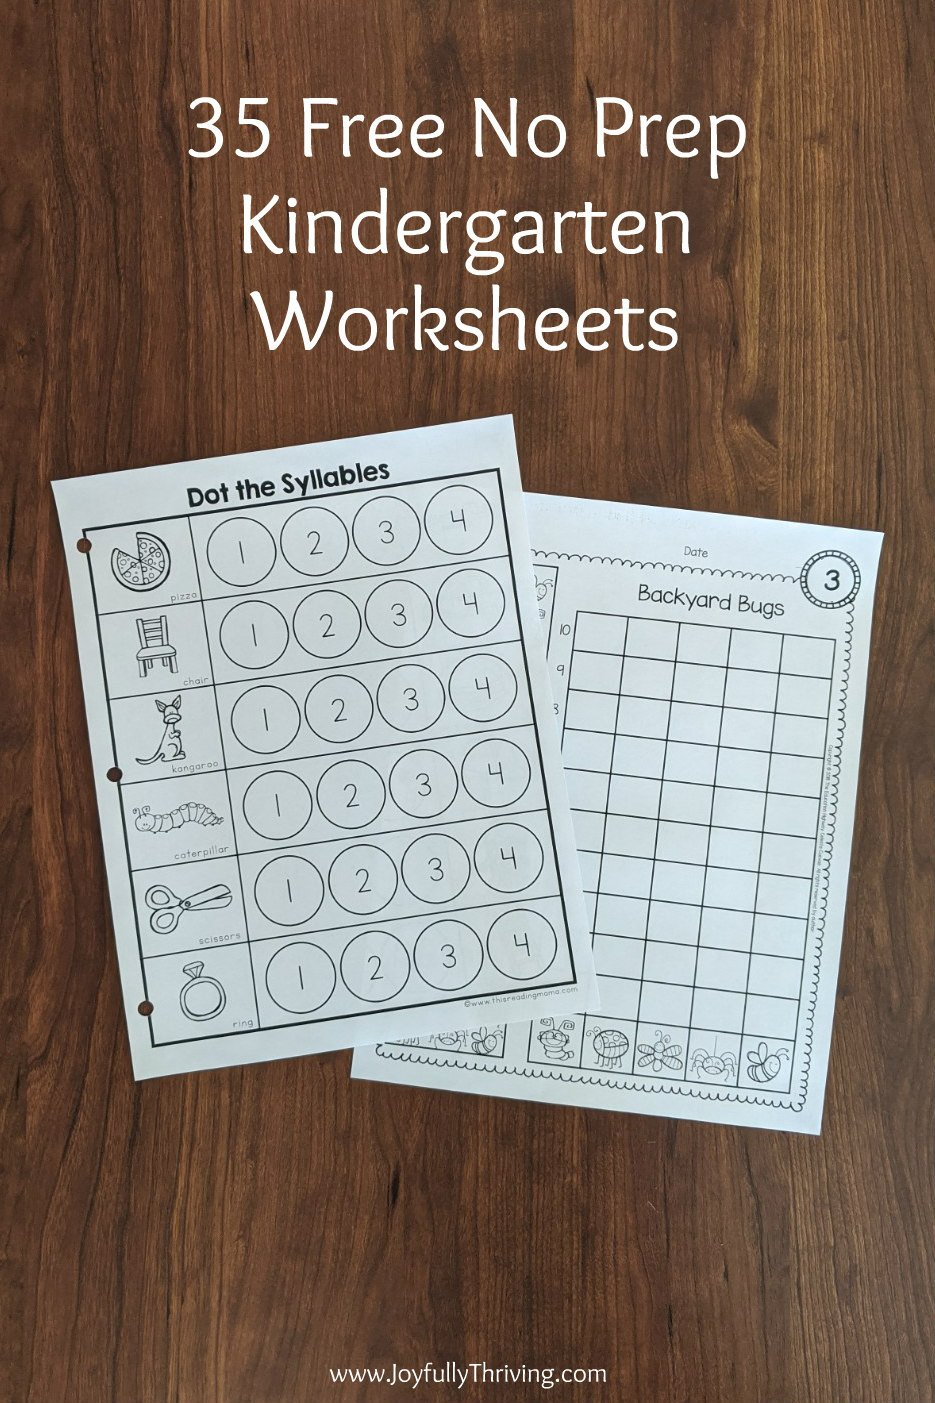 Free Syllable Worksheets for Kindergarten 35 No Prep Free Kindergarten Worksheets & Activities